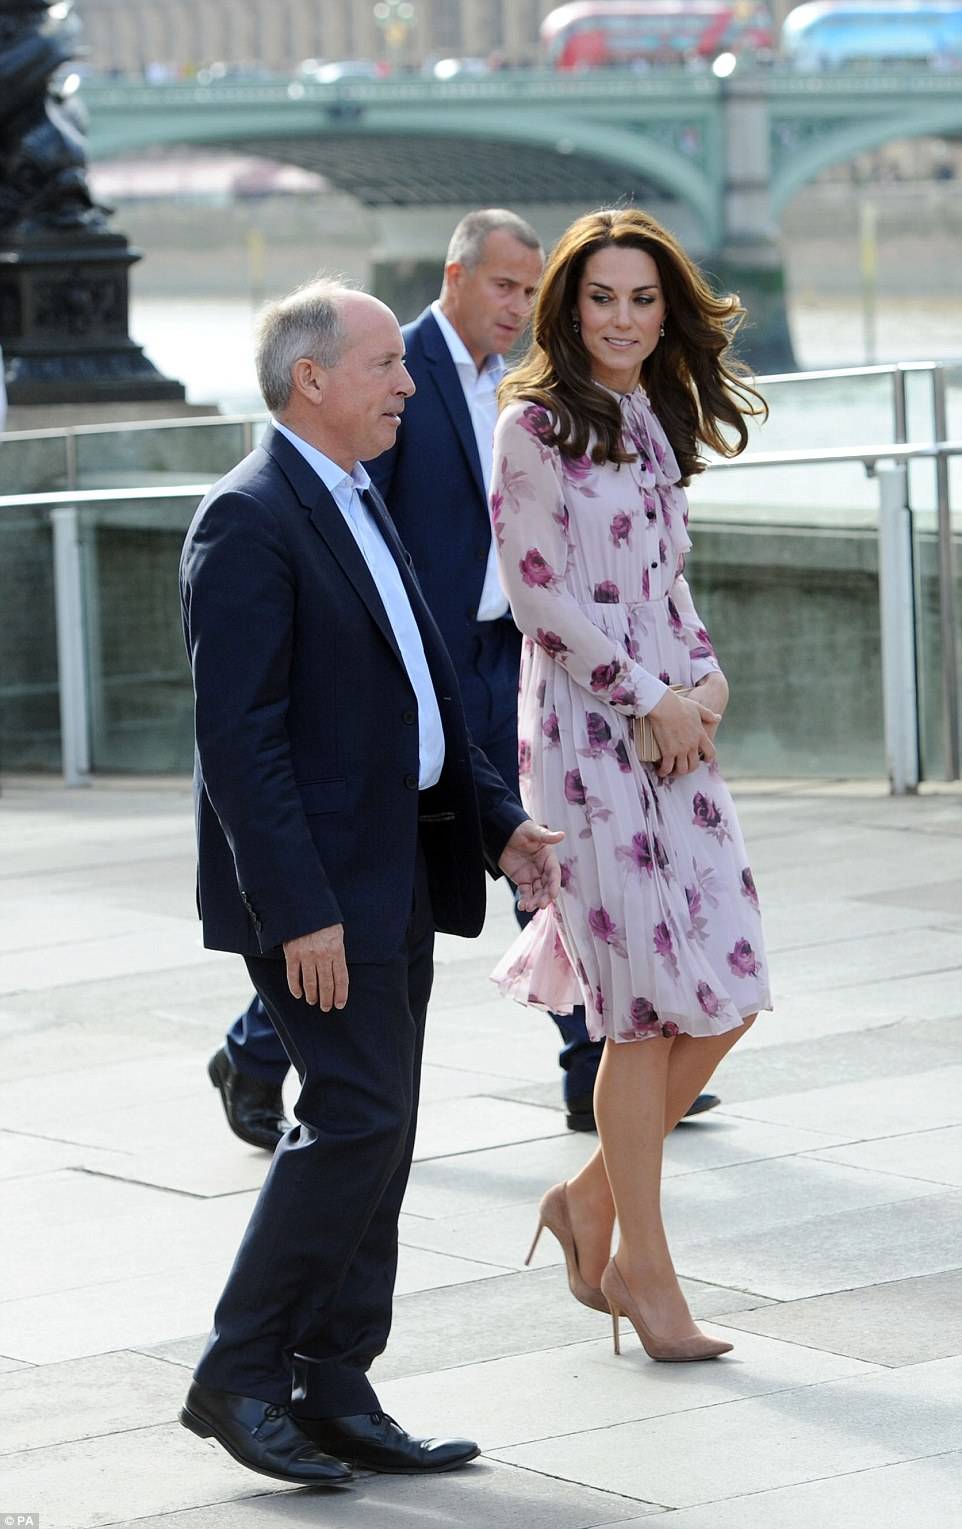 The Duchess of Cambridge walks from County Hall on the Southbank in London, to the Coca Cola London Eye after chatting to people who have battled with psychological problems